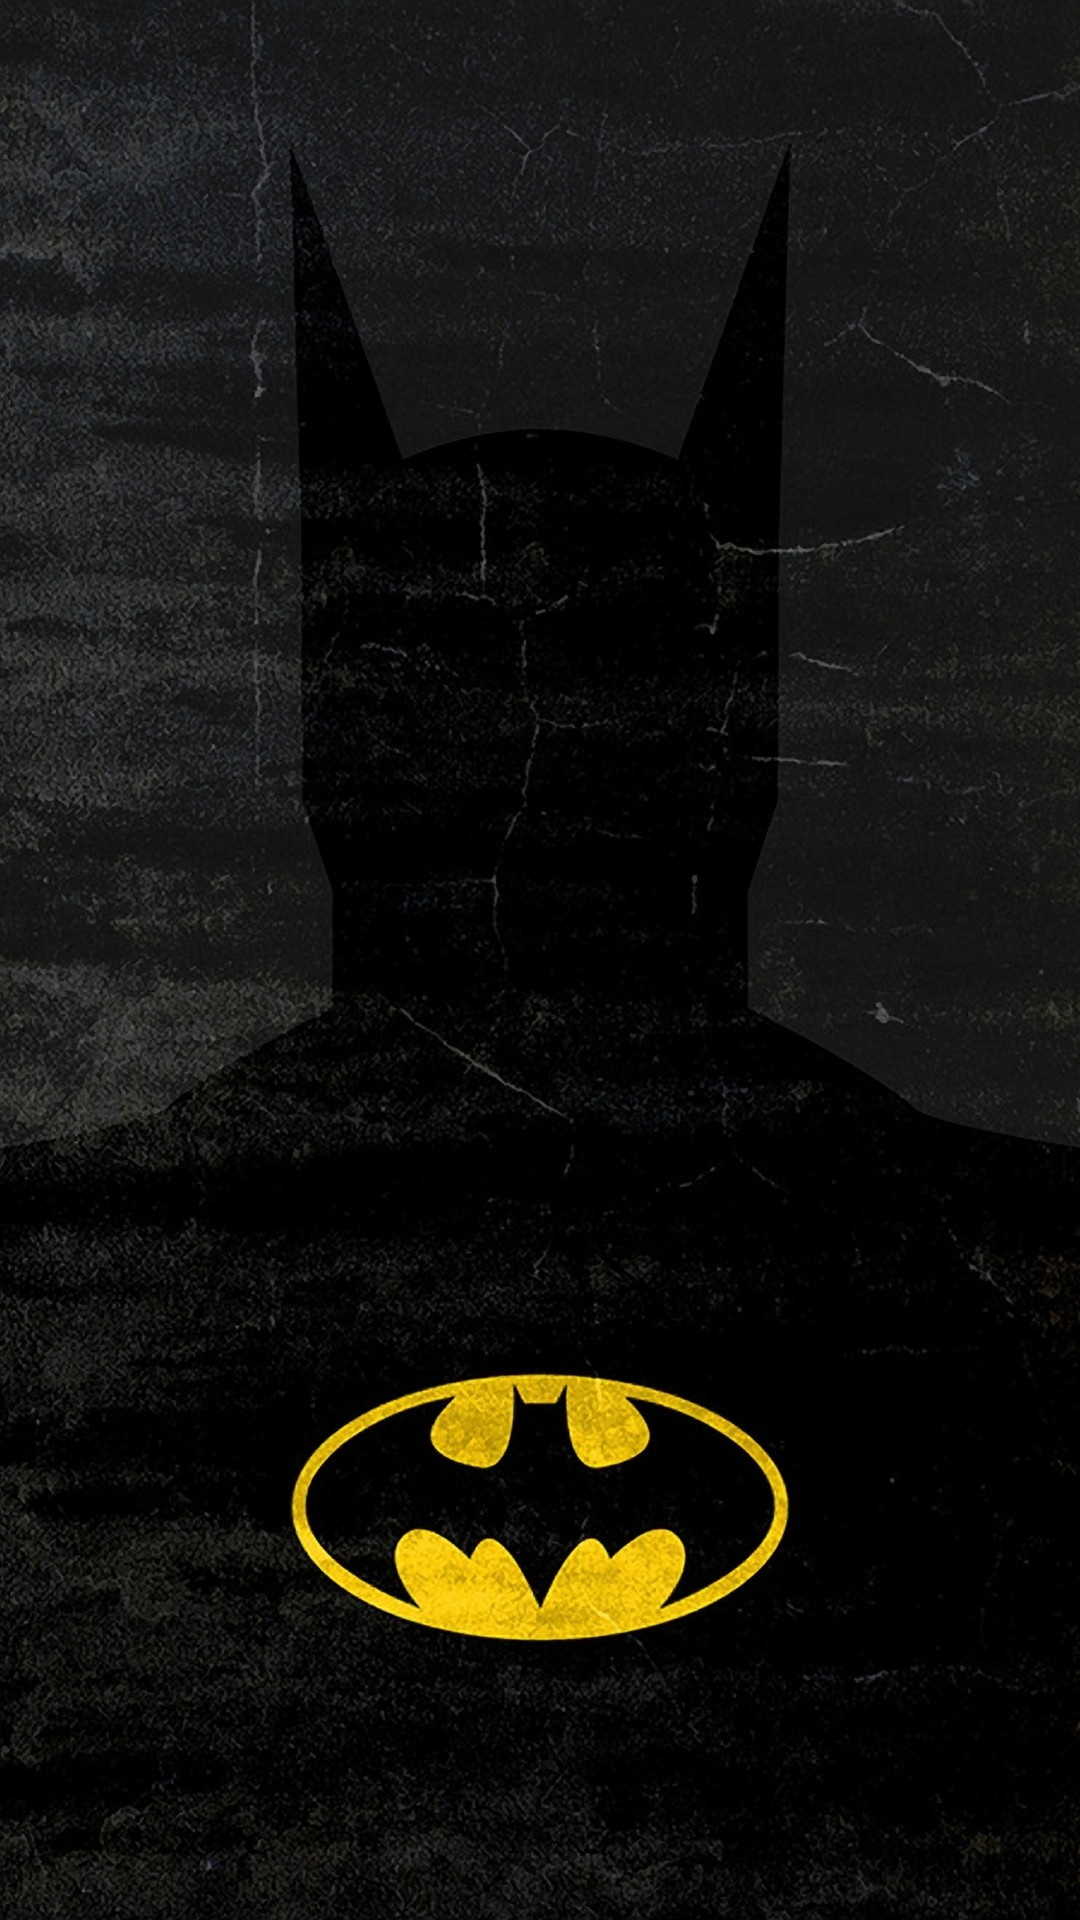 Res: 1080x1920, abstract batman logo iphone wallpapers cool images hd download apple  background wallpapers windows colourfull display lovely wallpapers  1080×1920 Wallpaper ...